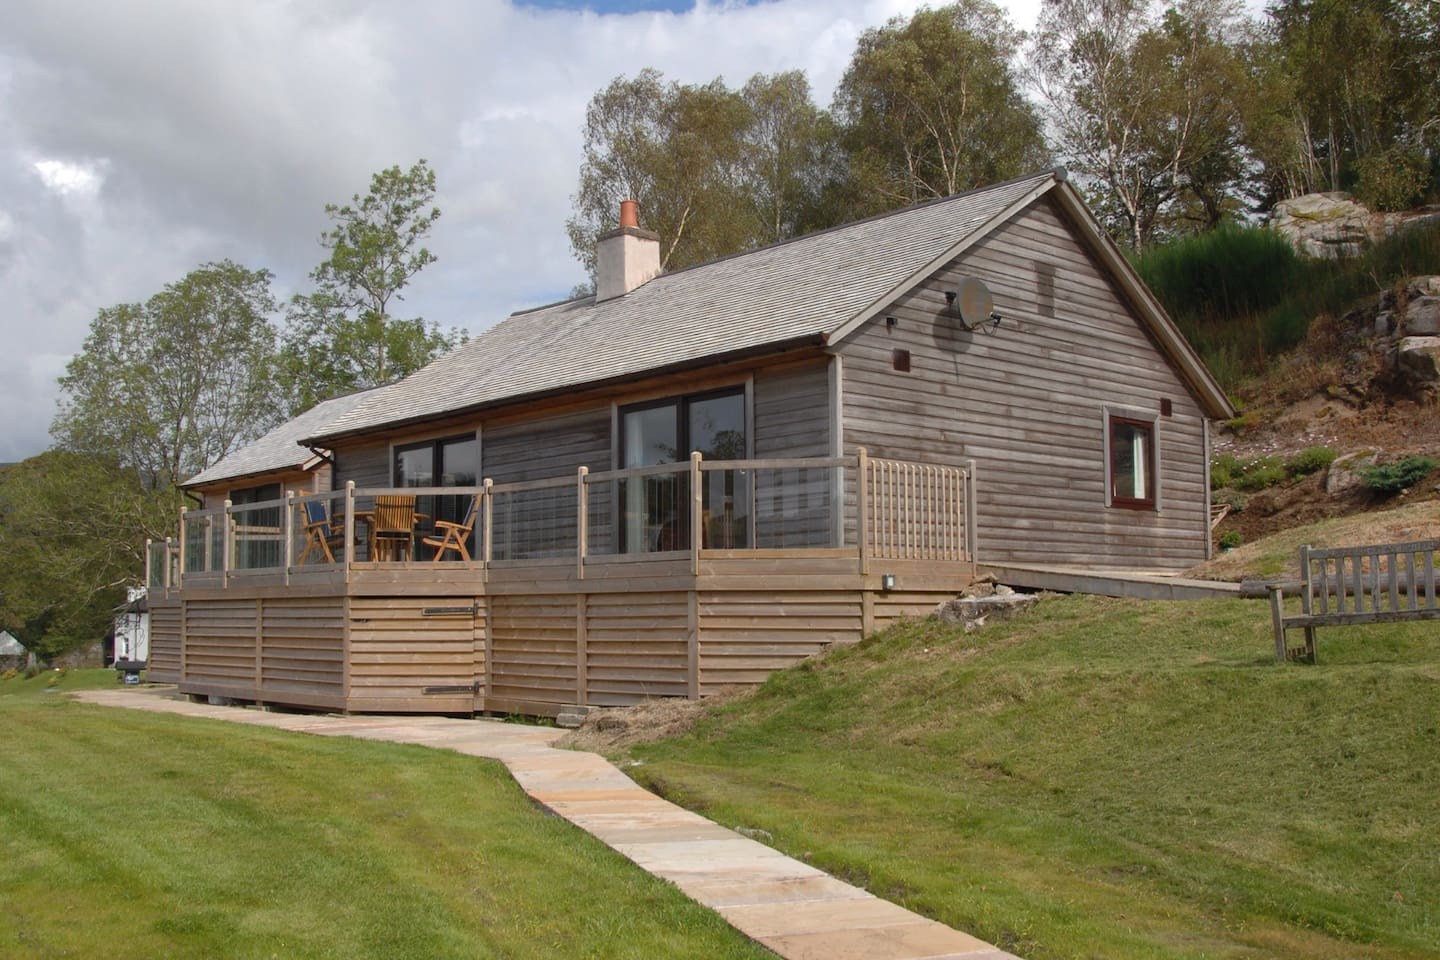 View of the main house which is Eco-cedar clad with cedar shingle roofing. The house was originally erected in 1967 and was completely renovated from a near derelict condition in 2006 having spent a year clearing the site which had become so overgrown wit